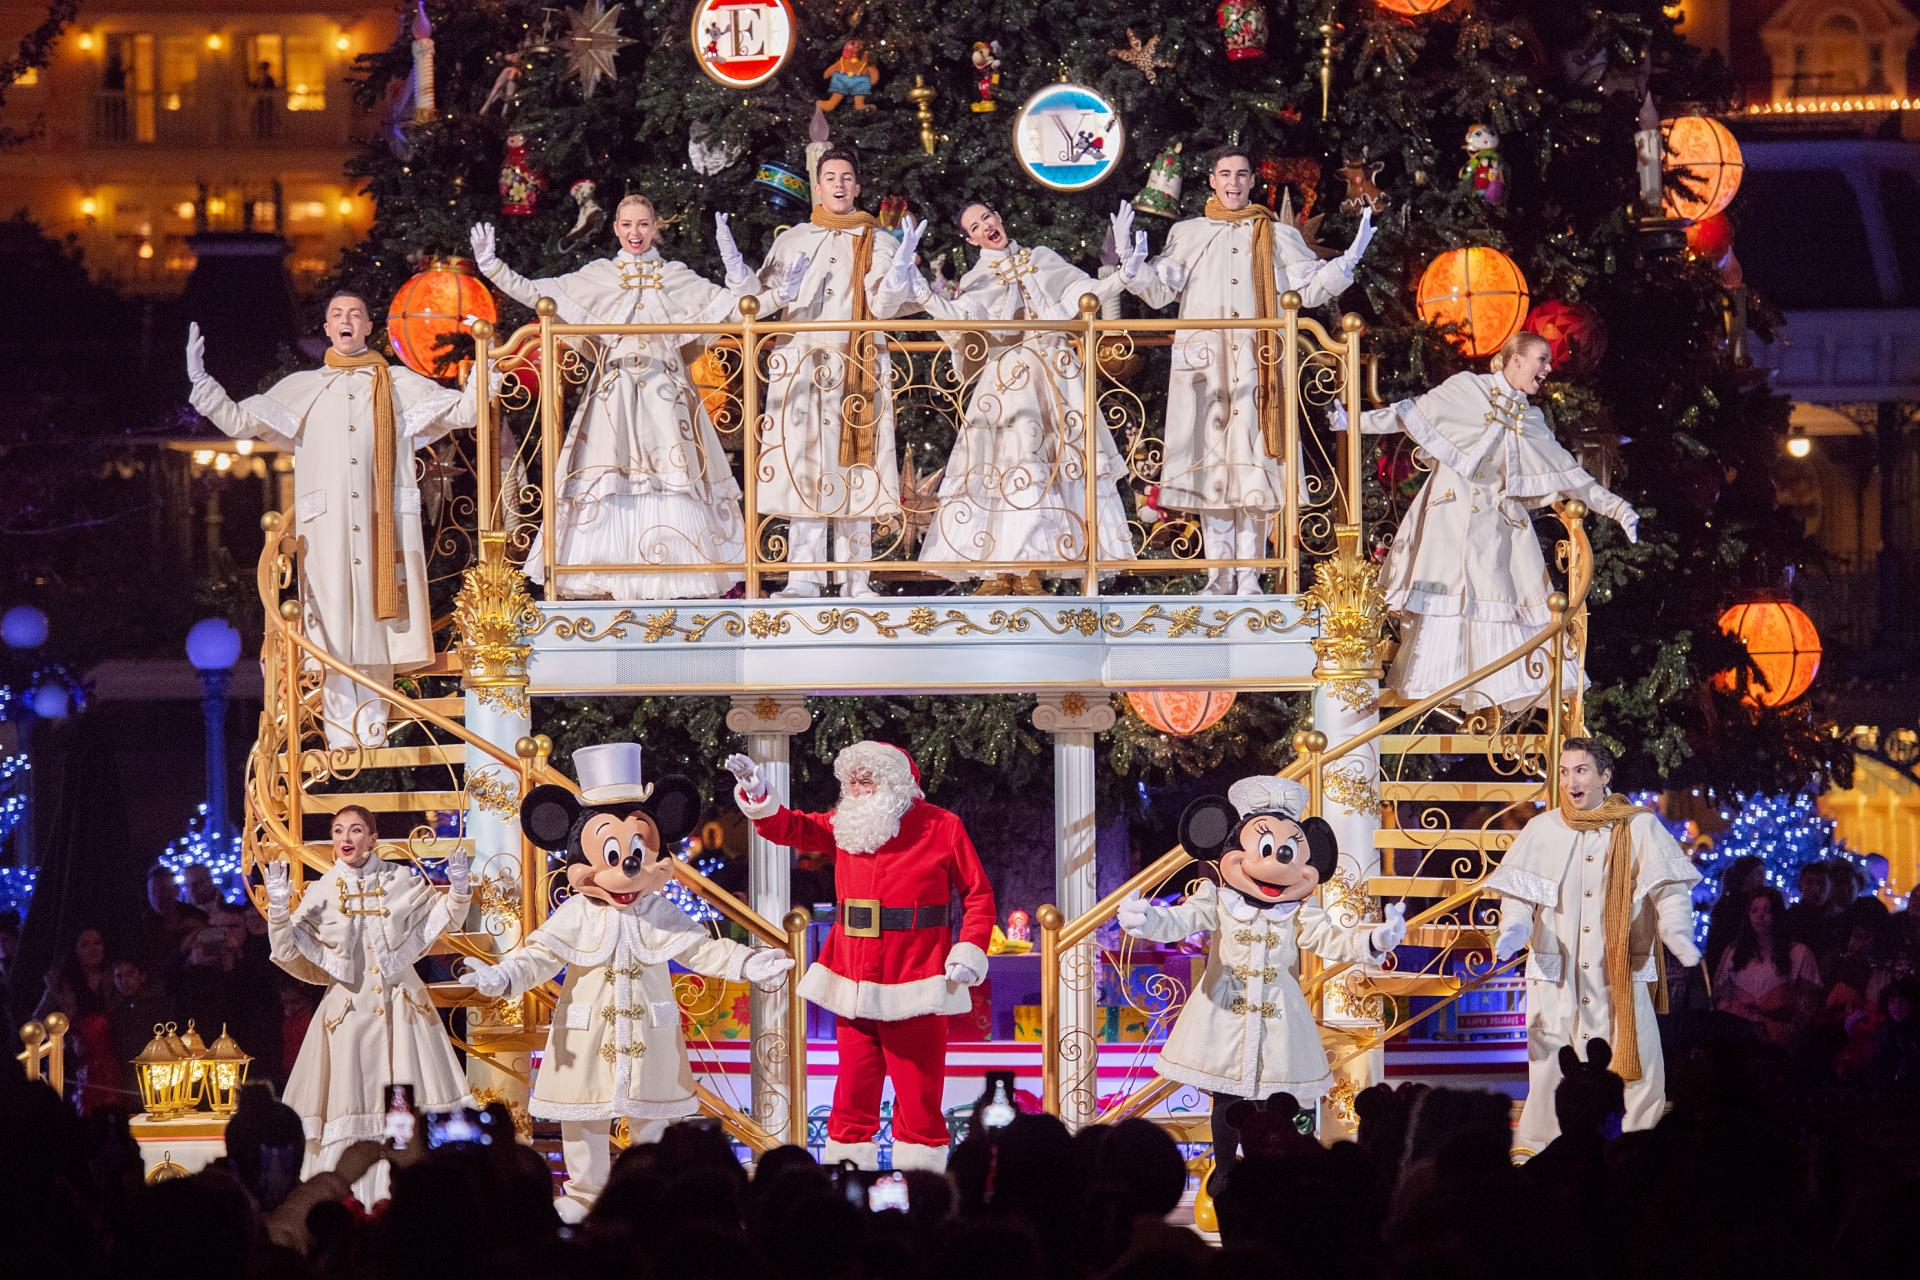 Noel enchante disney